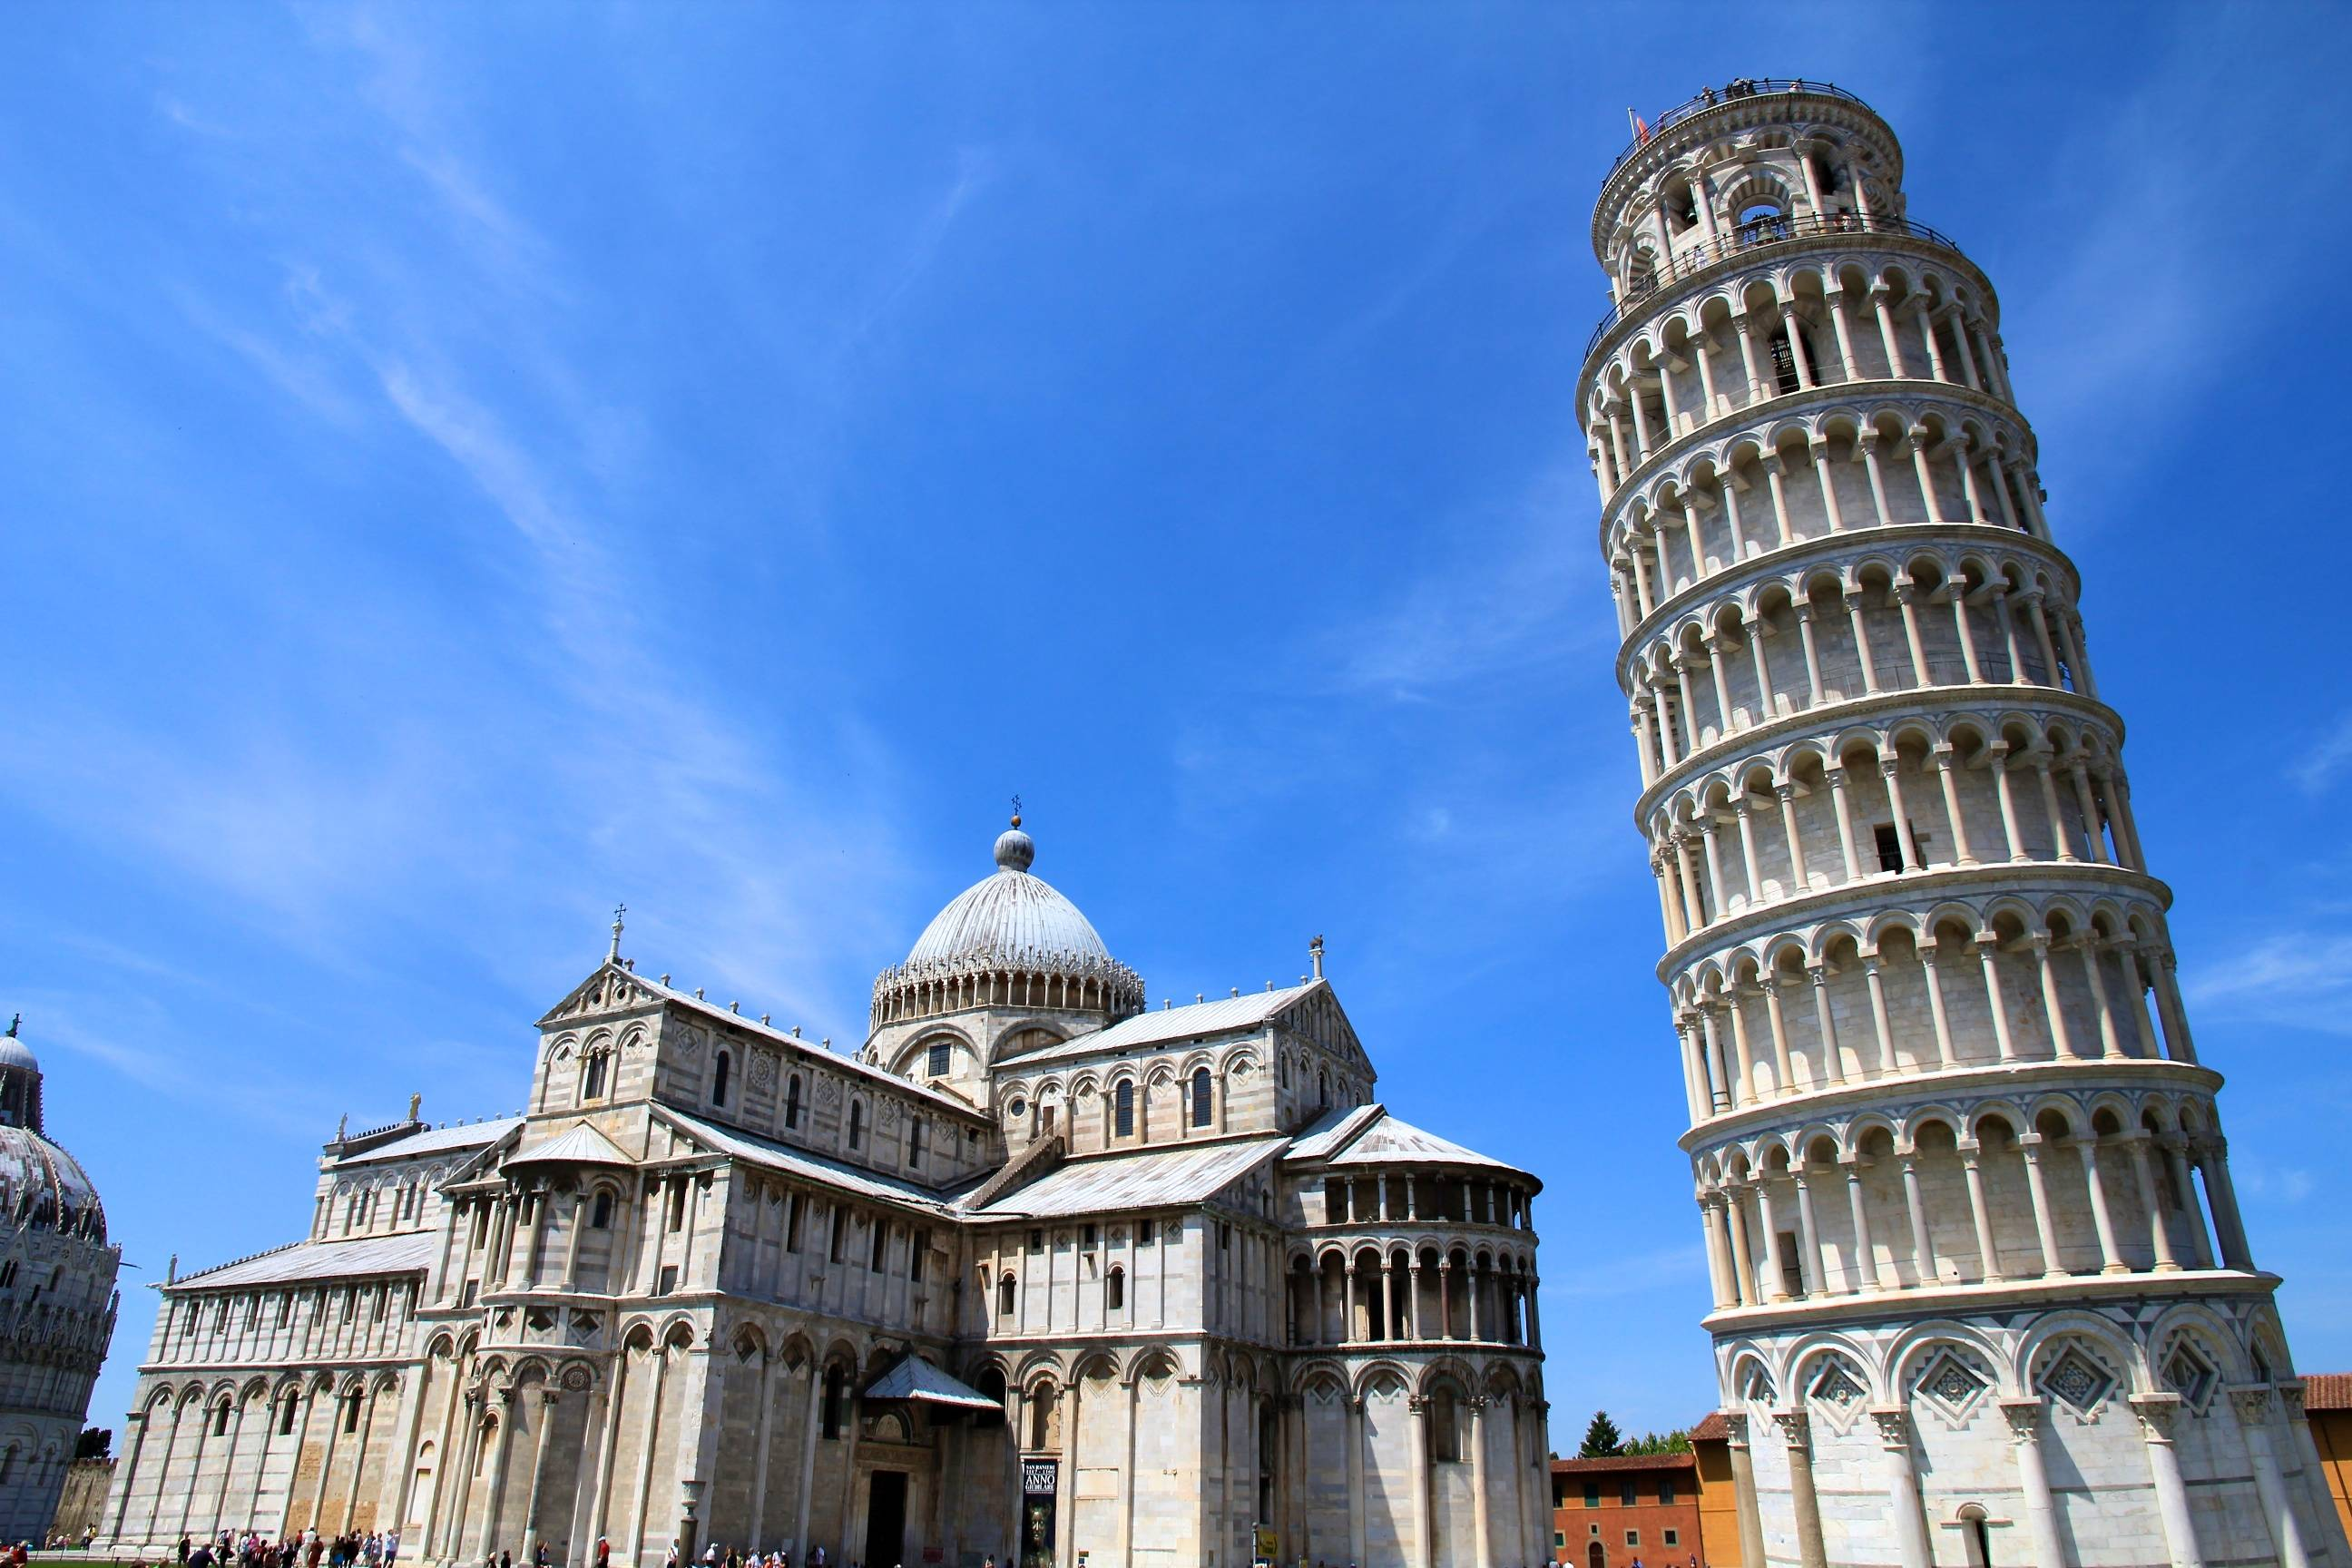 Best 37 Pisa Wallpaper on HipWallpaper Leaning Tower of Pisa 2592x1728